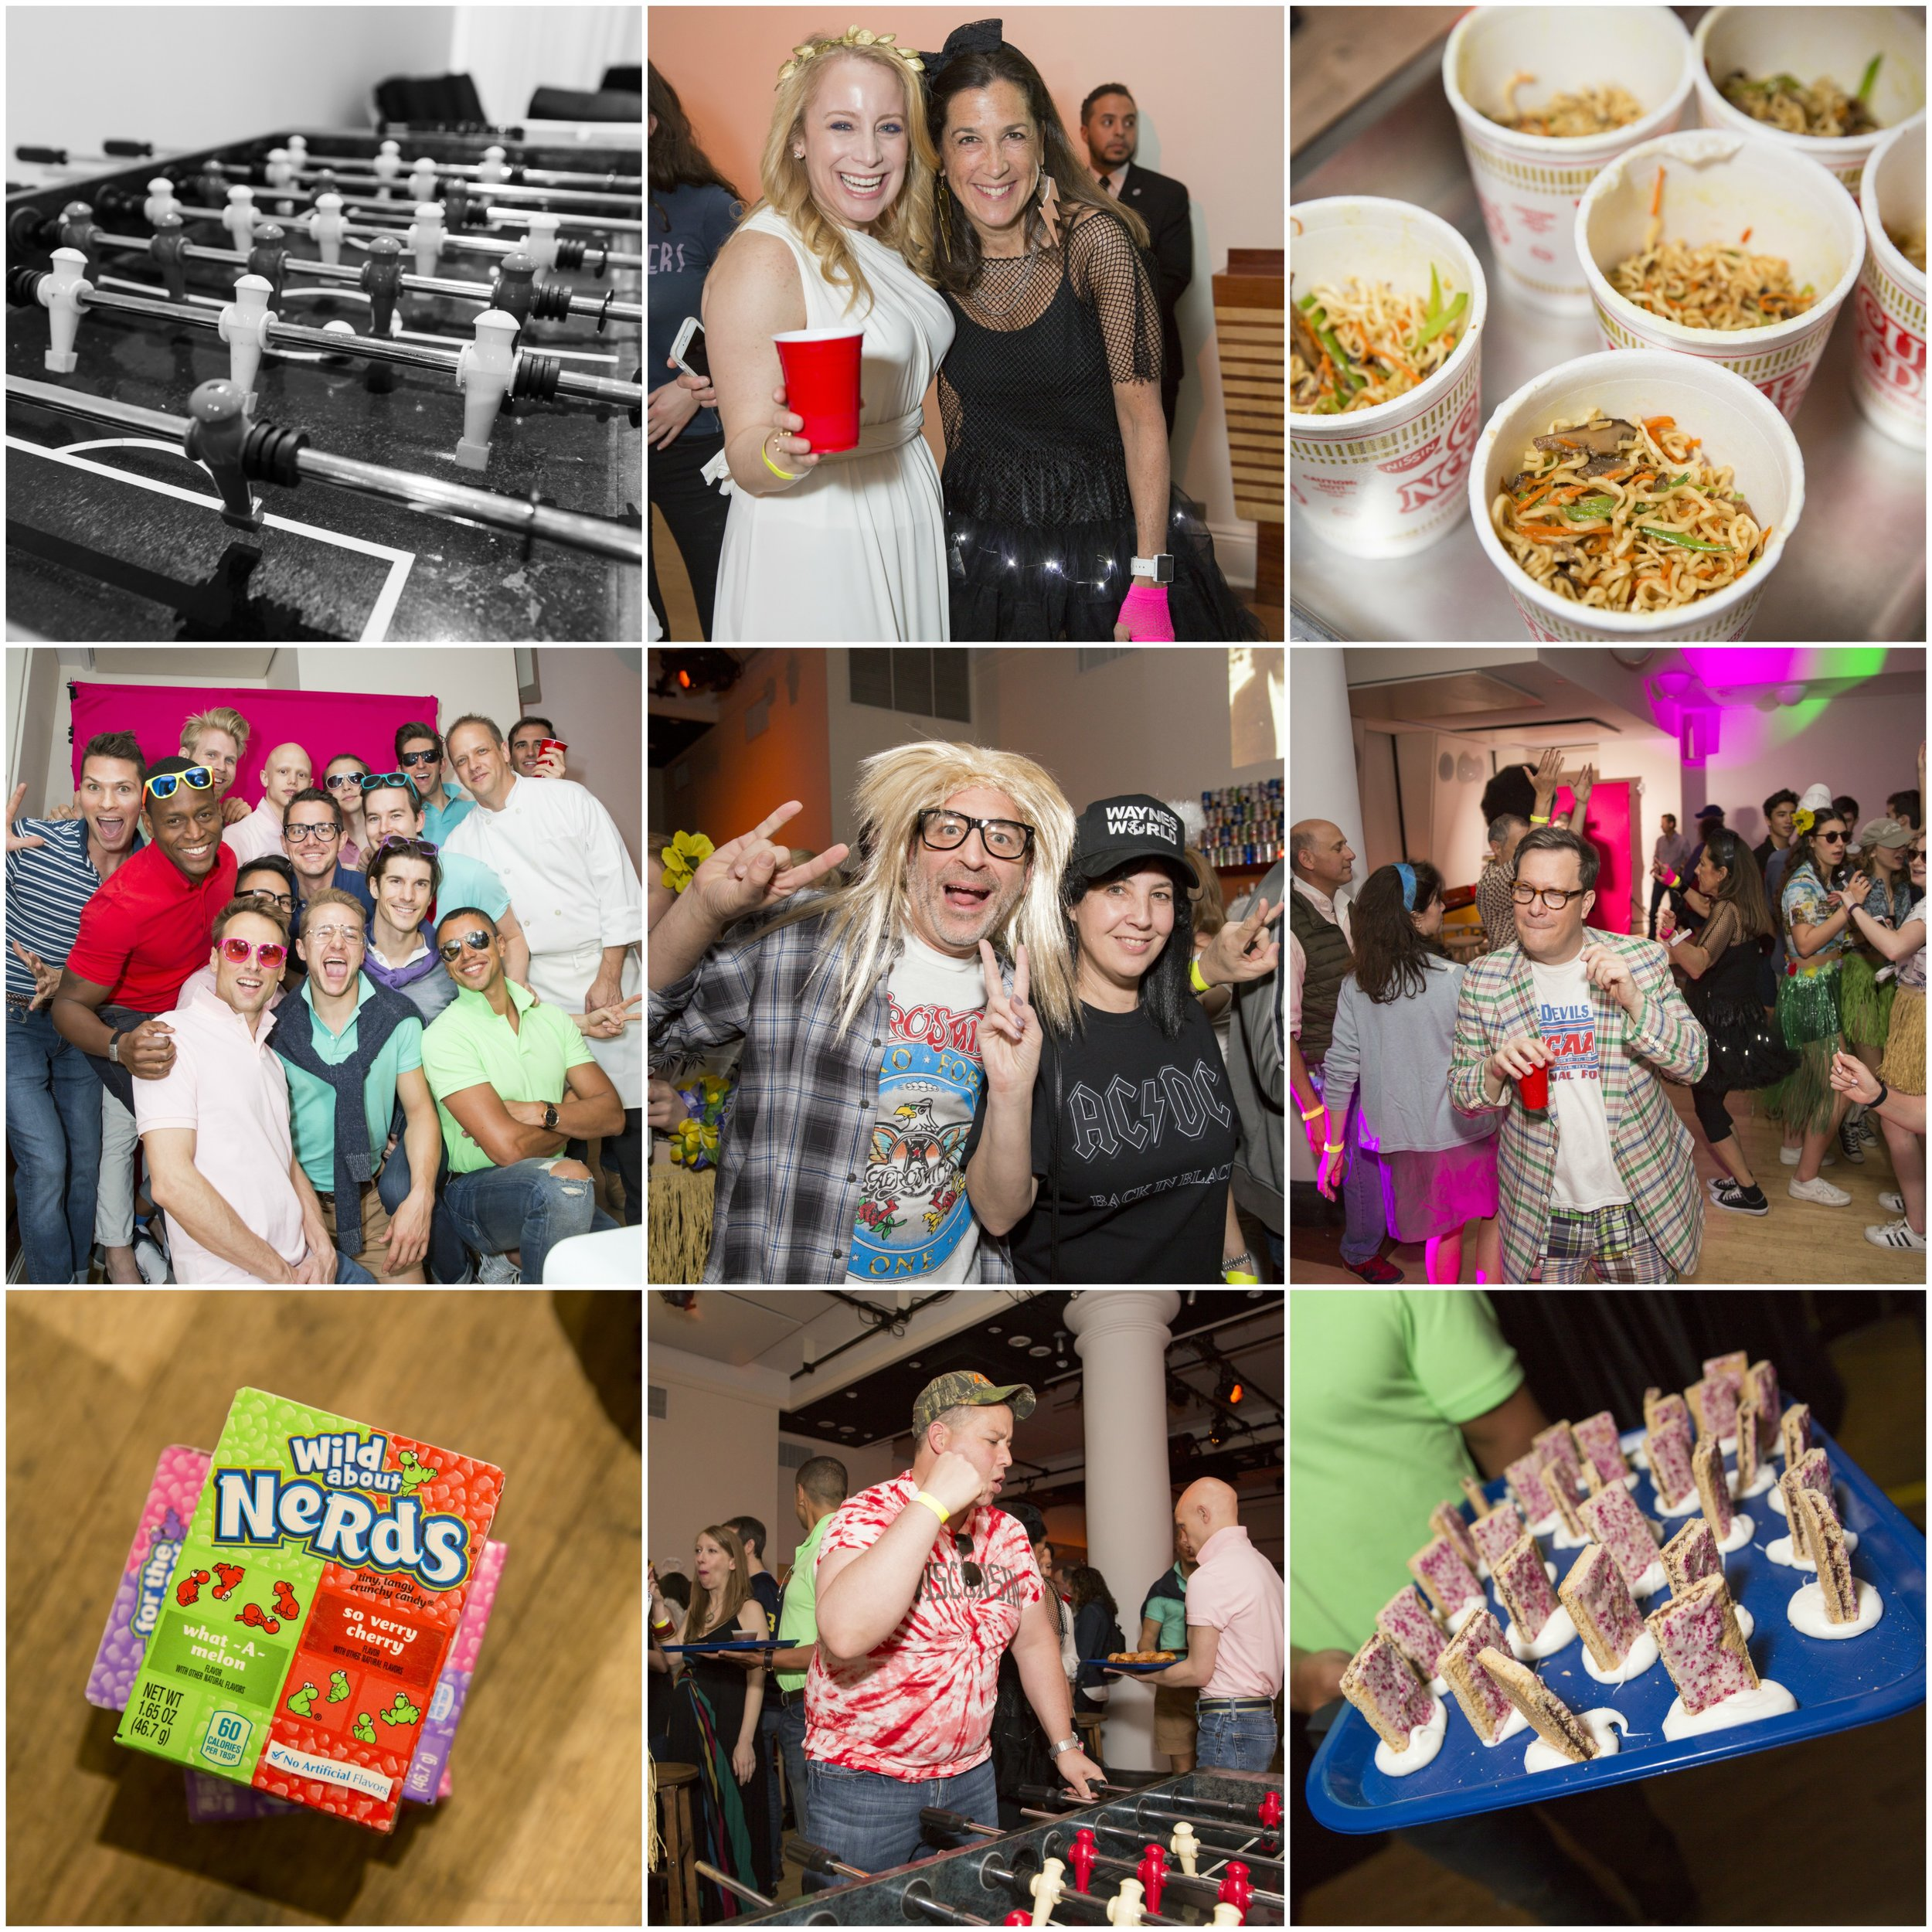 Revenge of the Nerds event collage